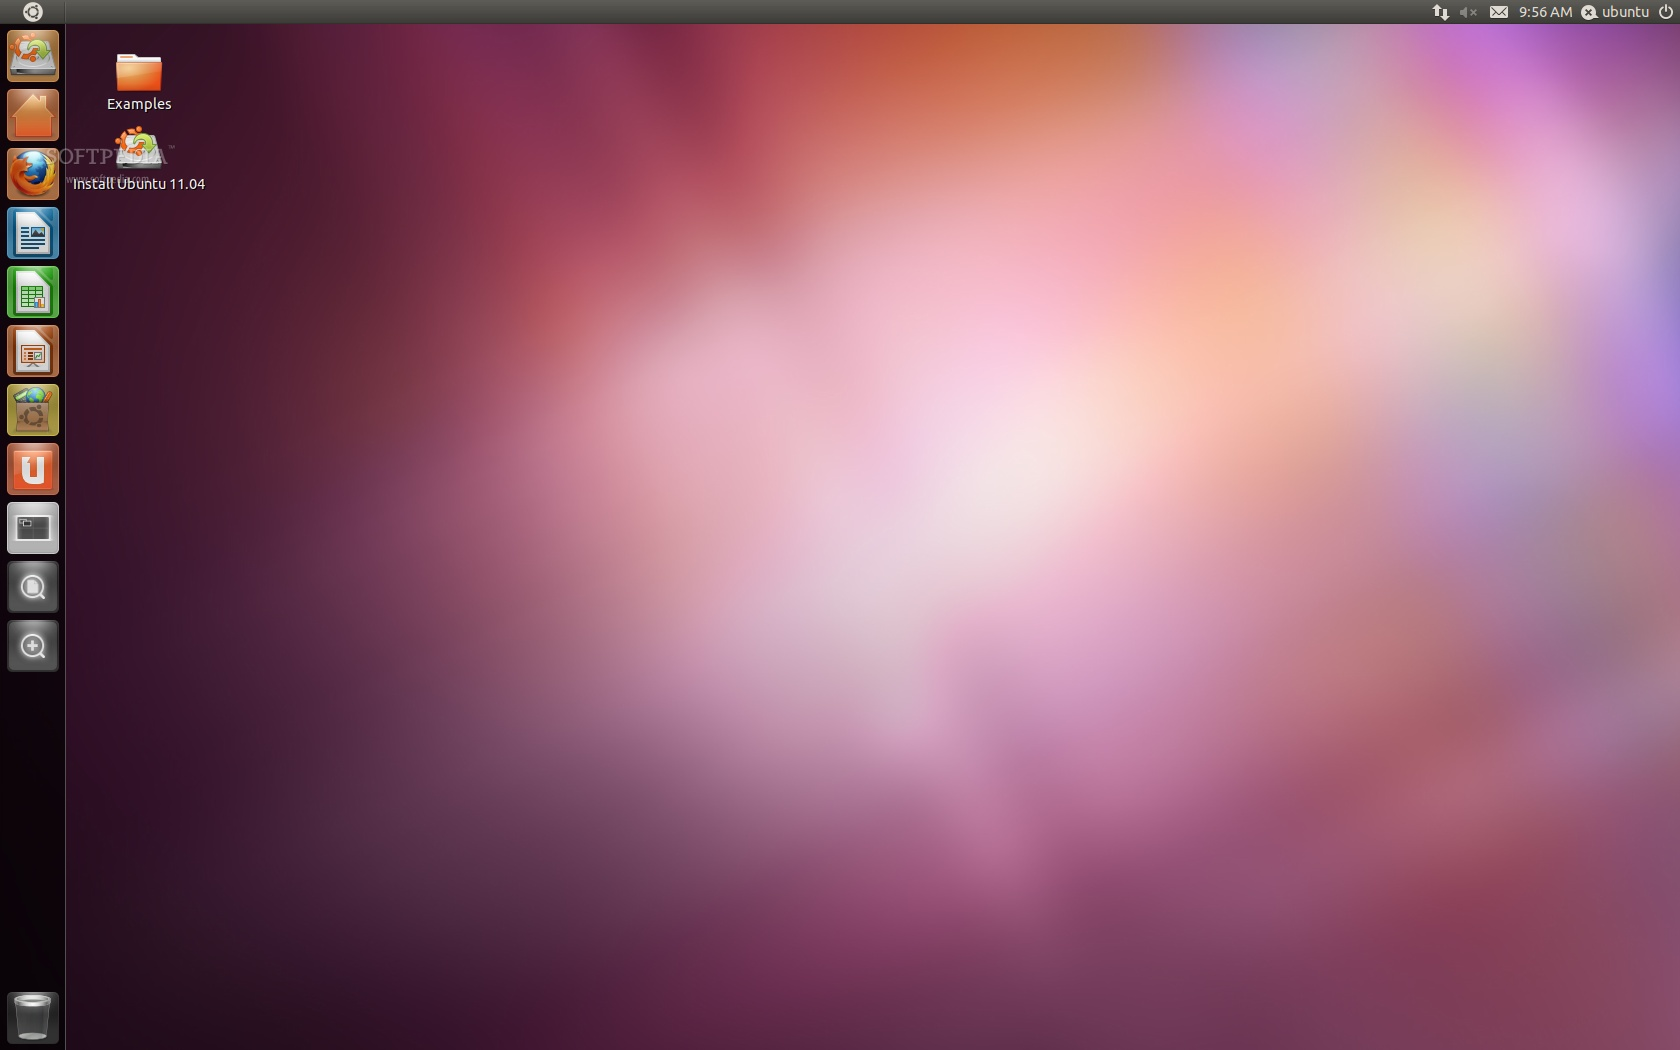 Ubuntu 11. 04 beta 1 is available for download.